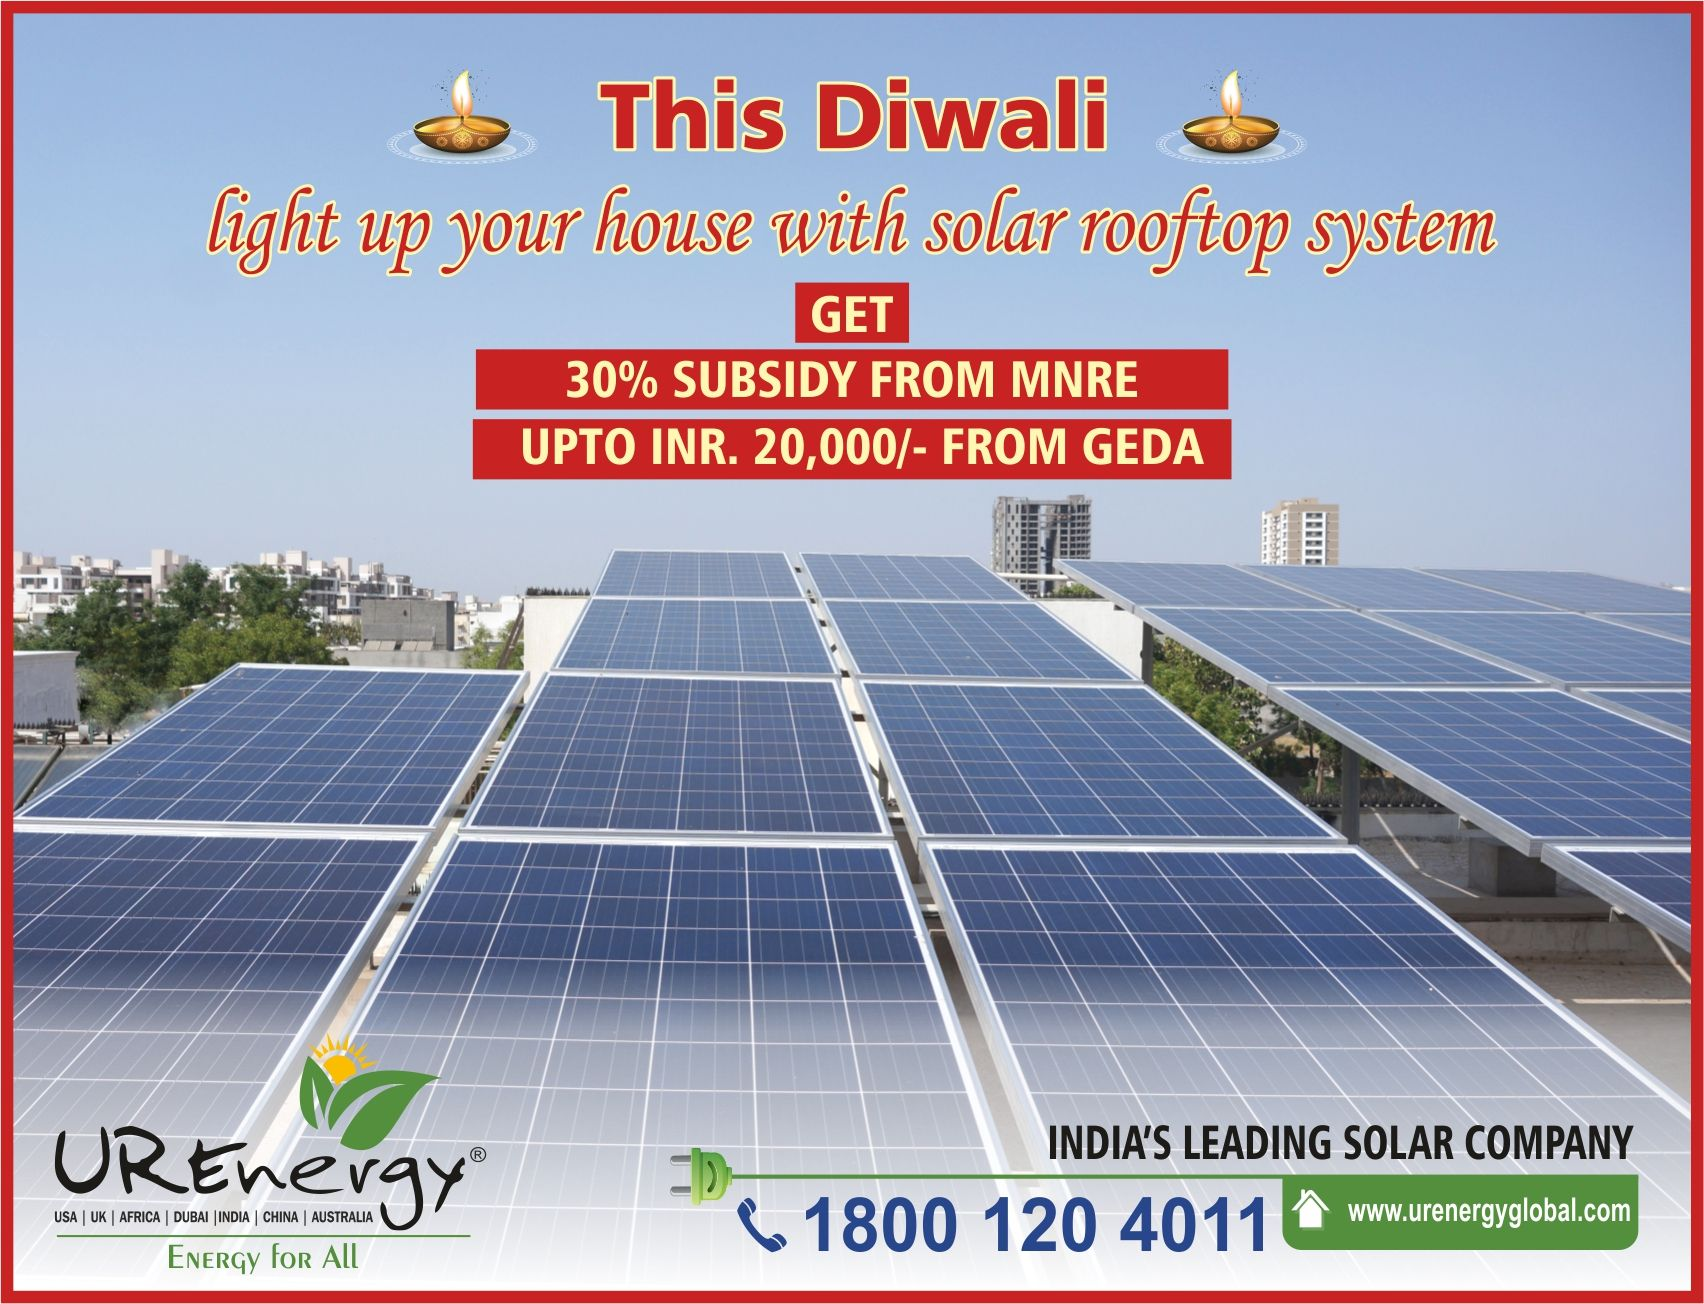 This Diwali Light Up Your House With Solar Rooftop System Get 30 Subsidy From Mnre Upto Inr 20 000 From Ged Diwali Lights Roof Solar Panel Solar